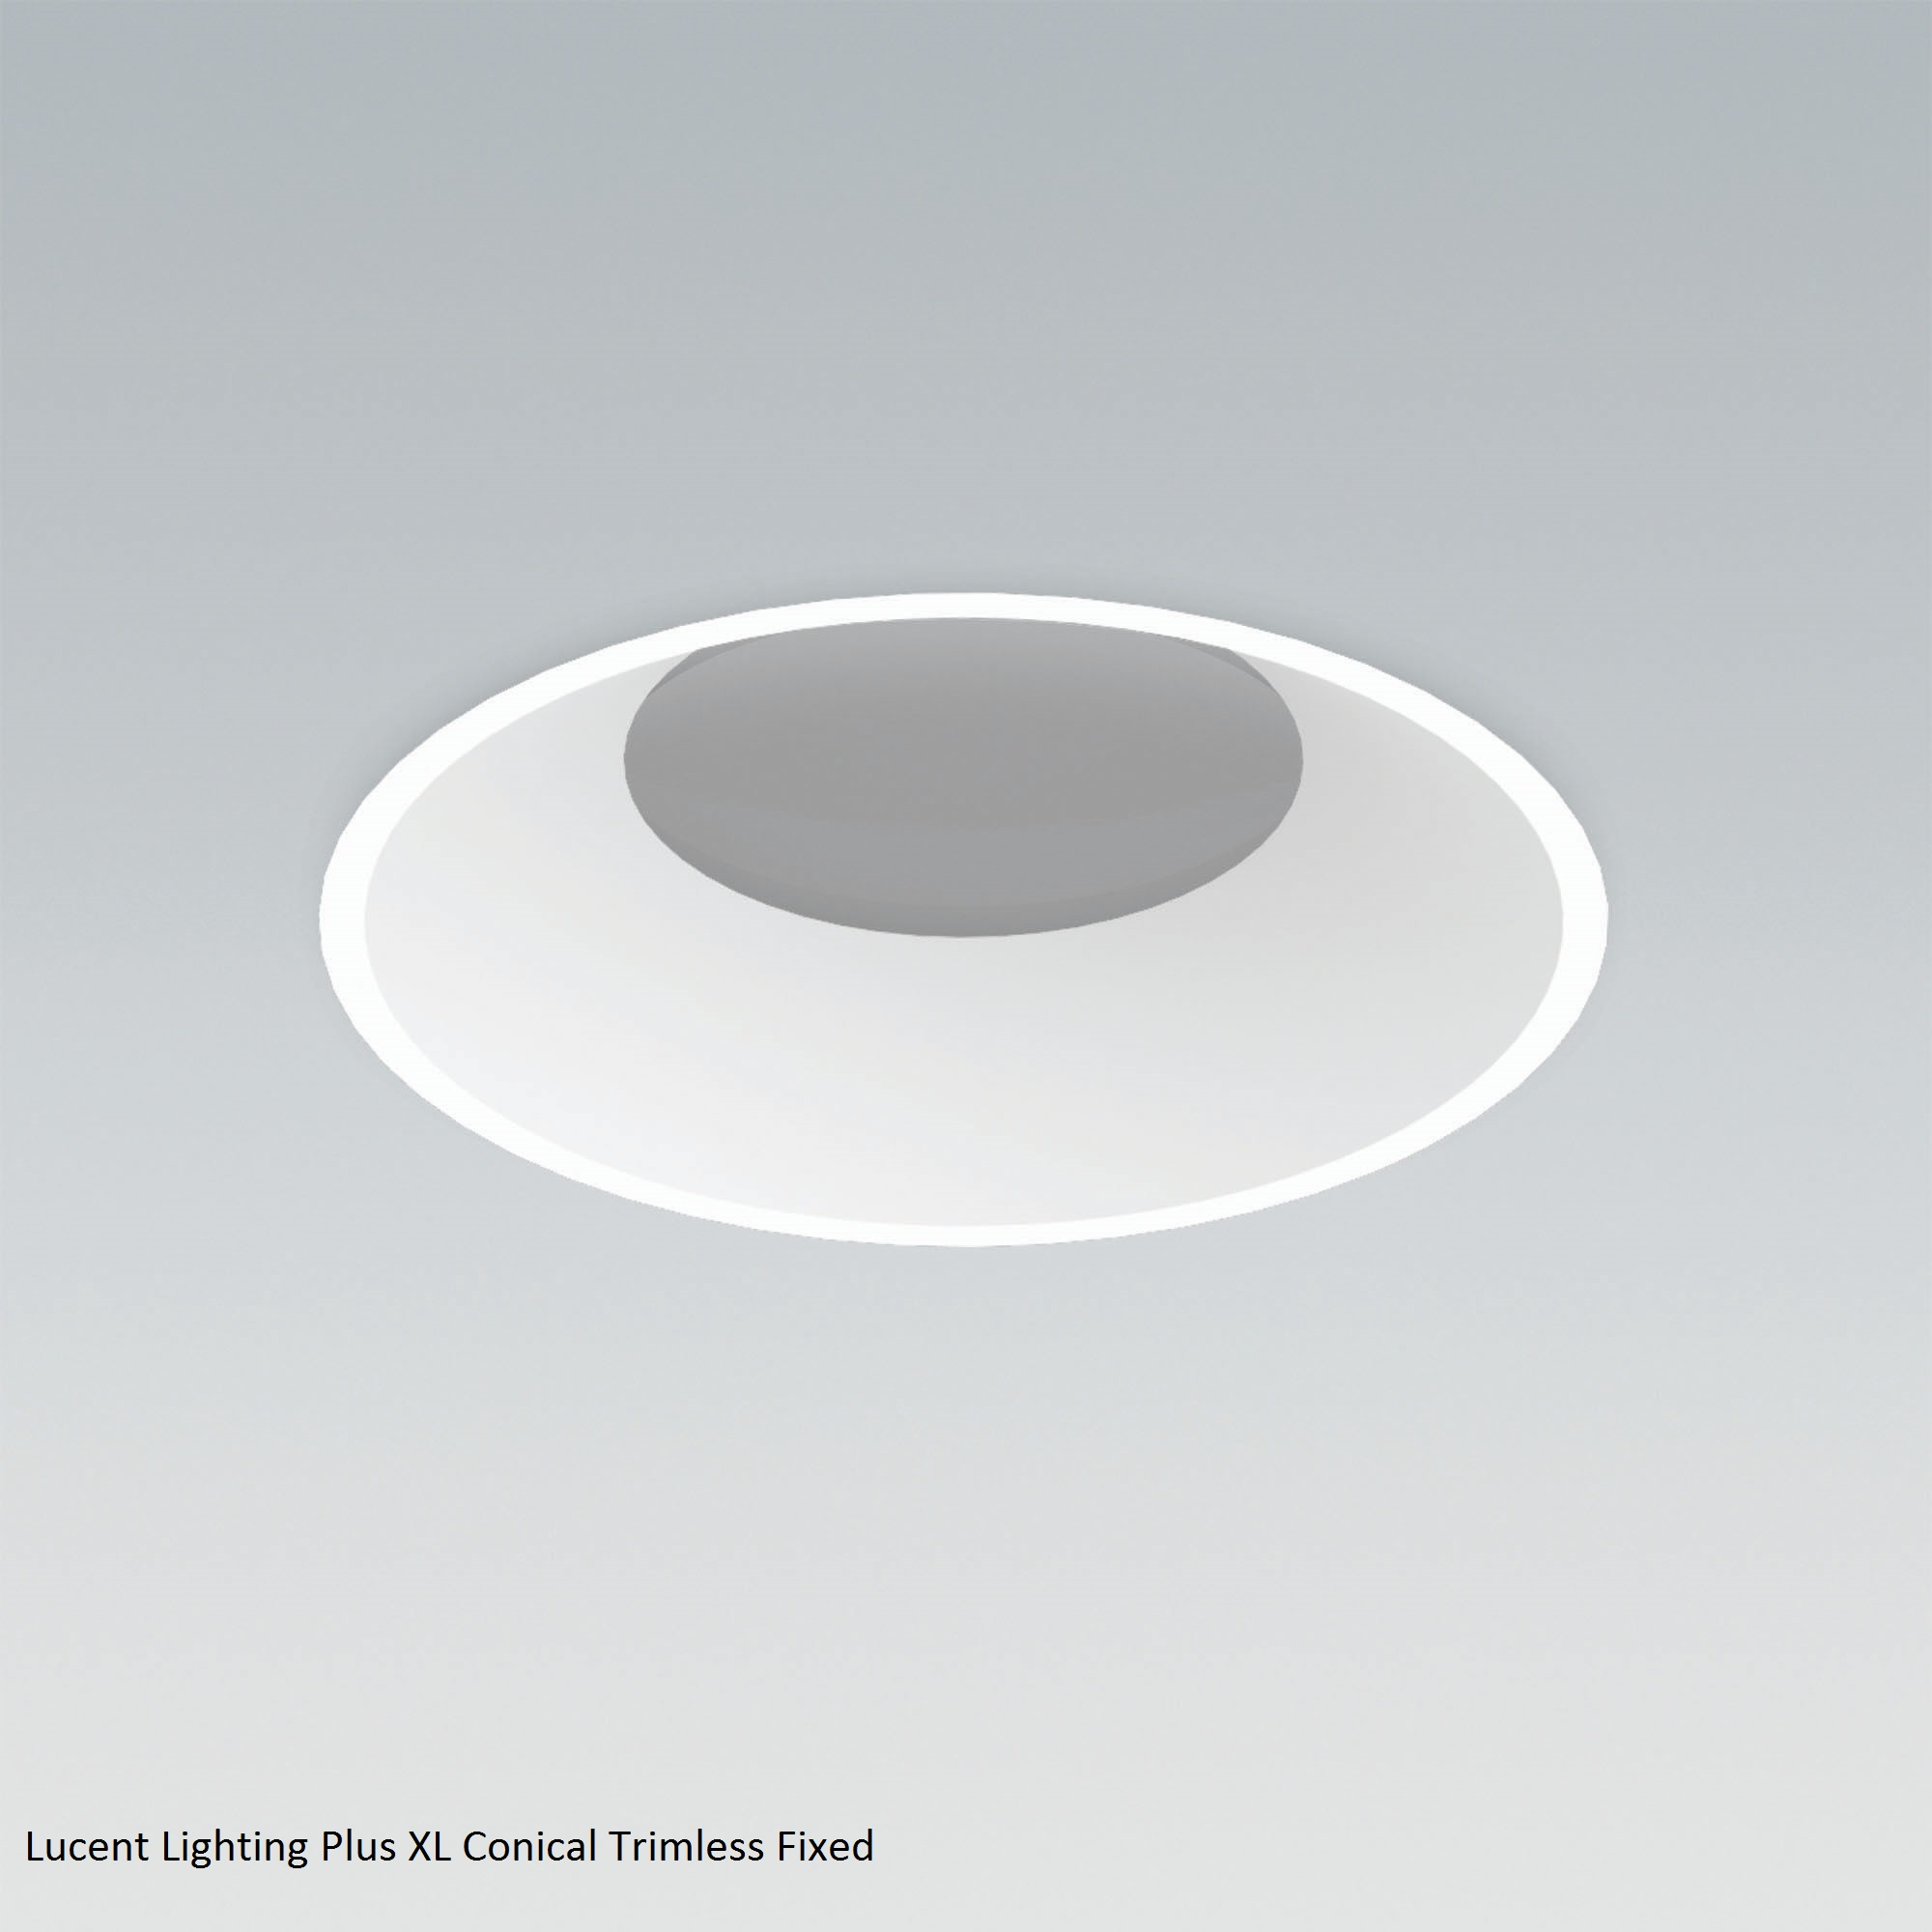 lucent-lighting-plus-xl-conical-trimless-fixed